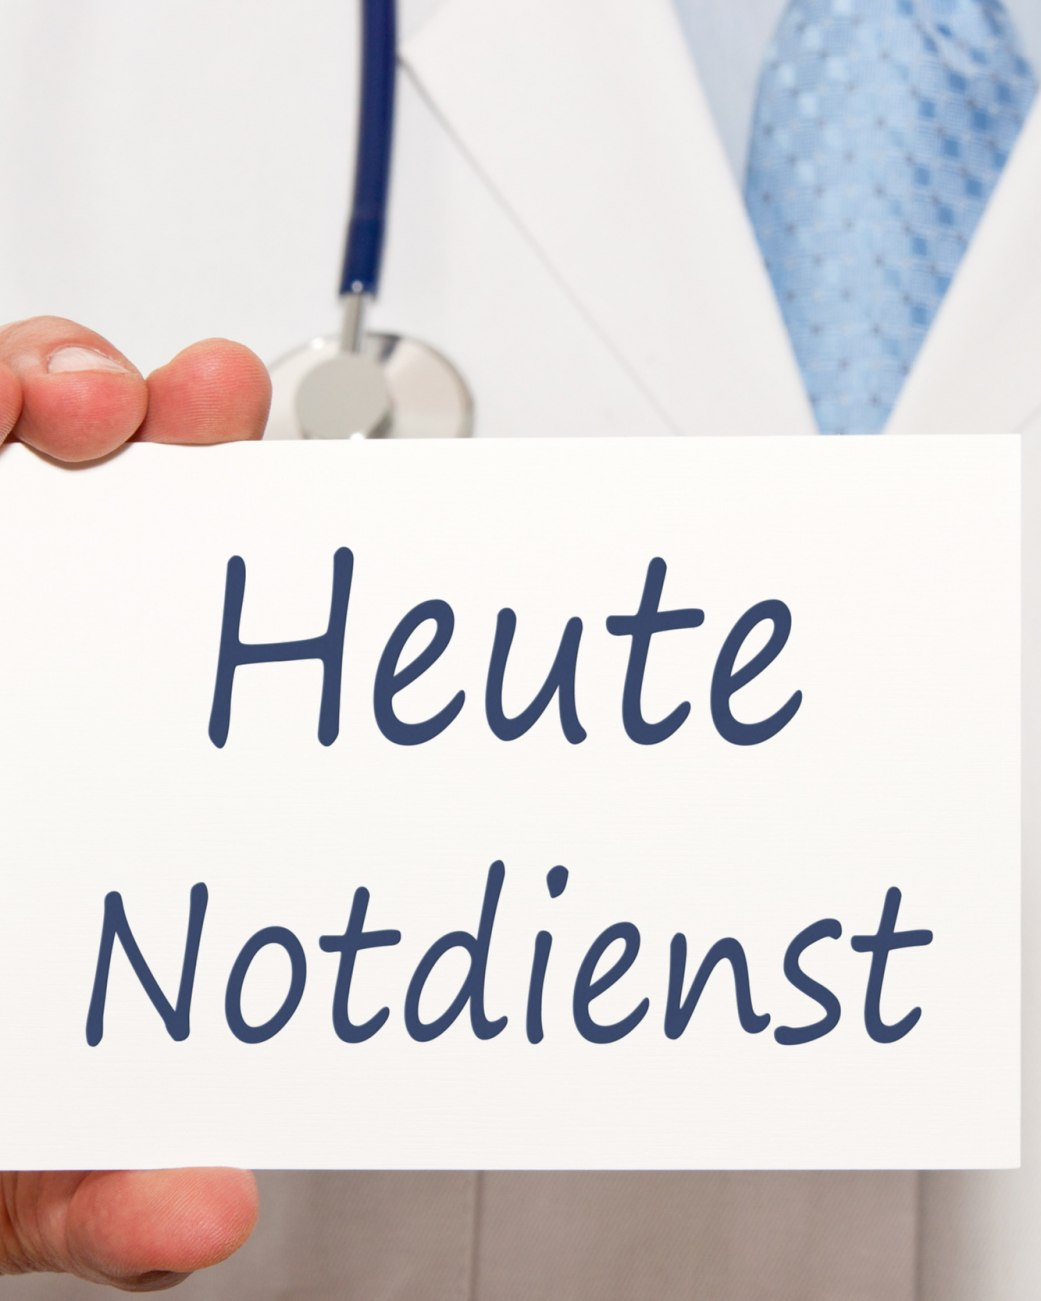 Arzt Notdienst, © dp@pic/stock.adobe.com